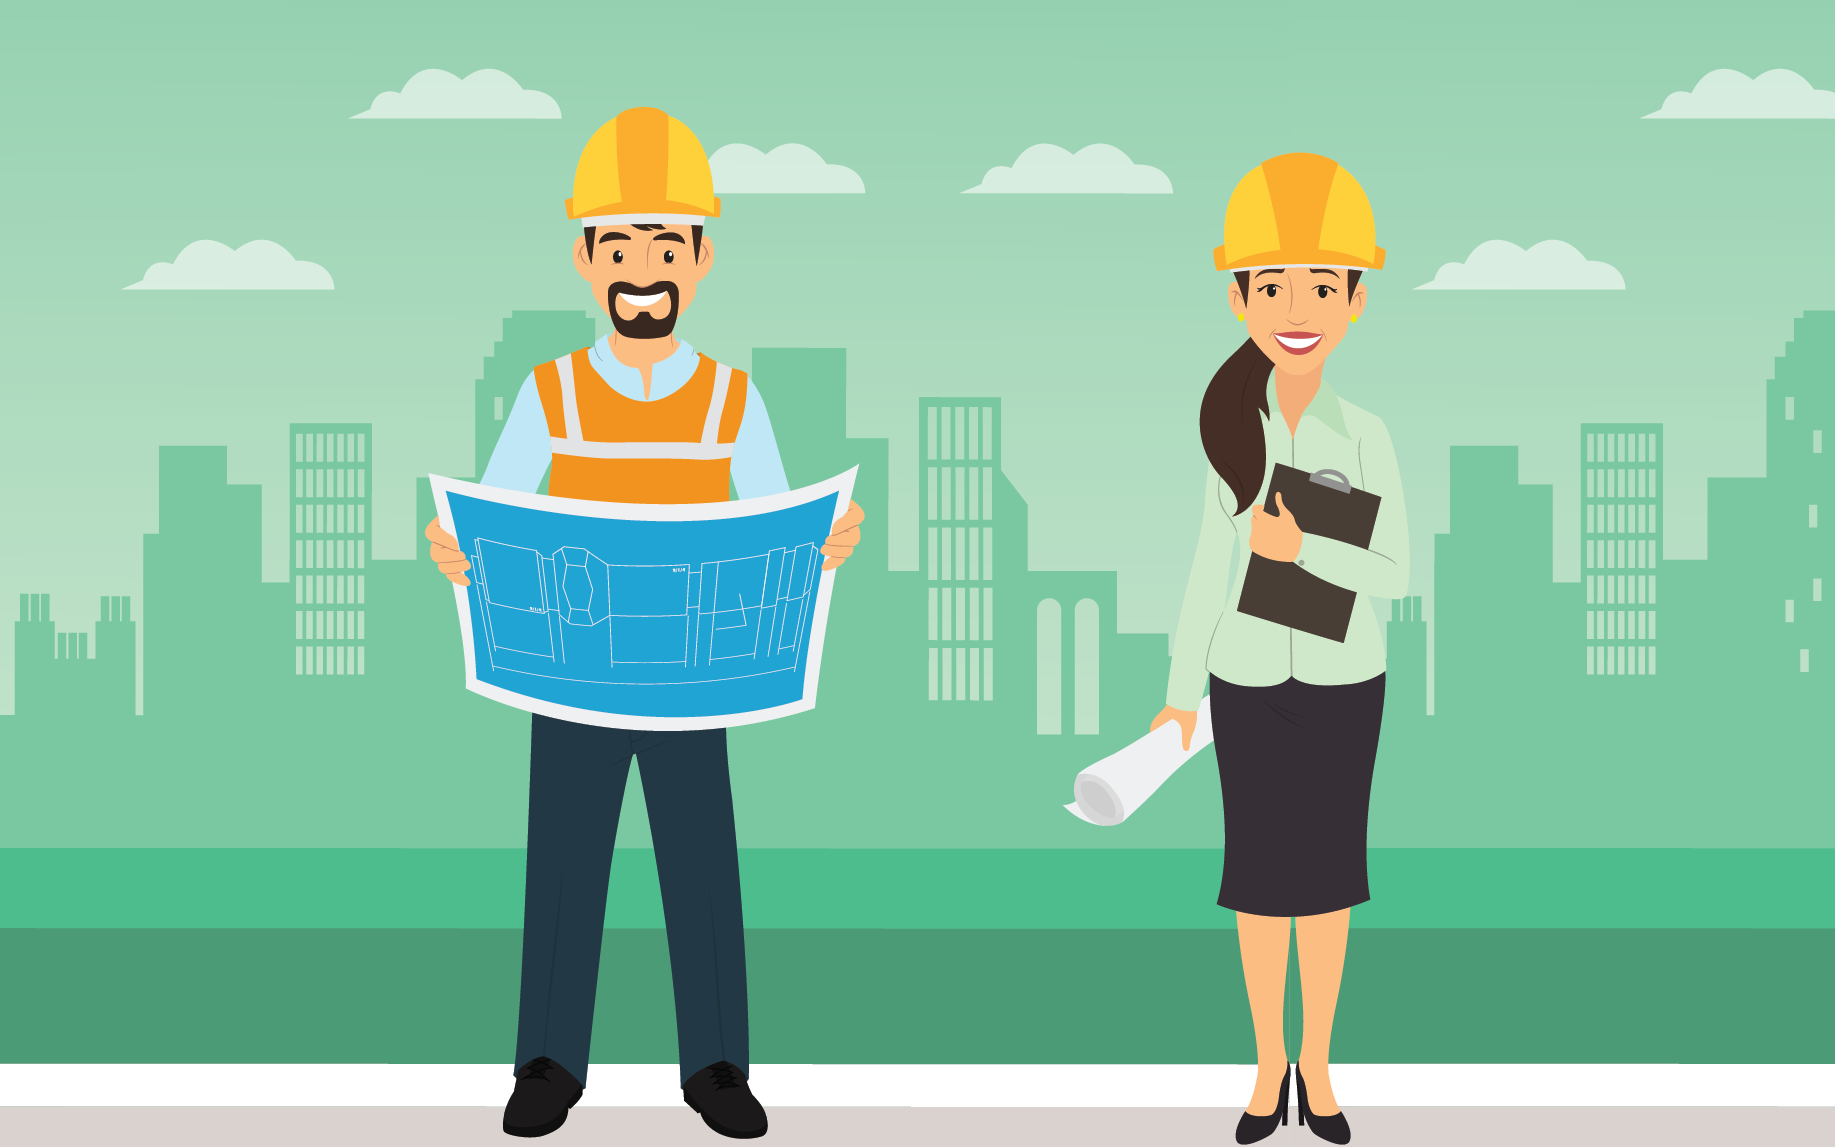 Are Architects More Important Than Civil Engineers?